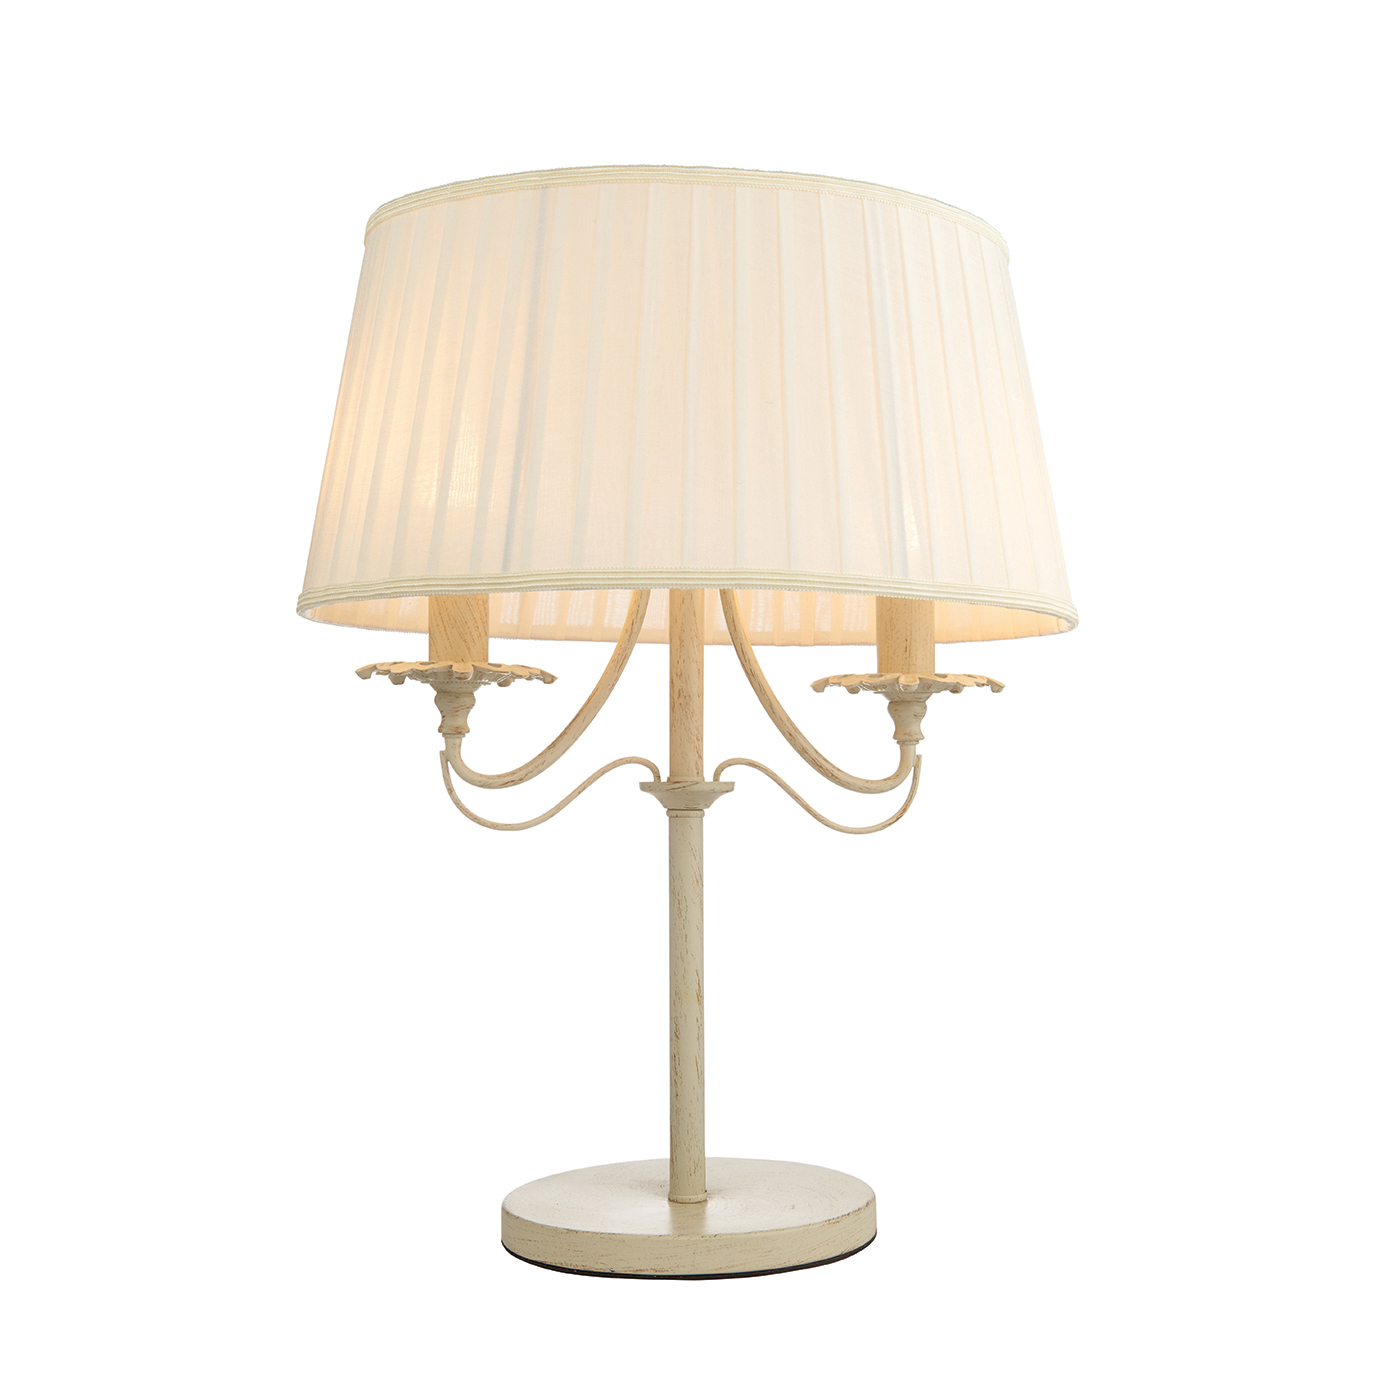 Endon 60762 Chester Table Lamp 2x40W Crm